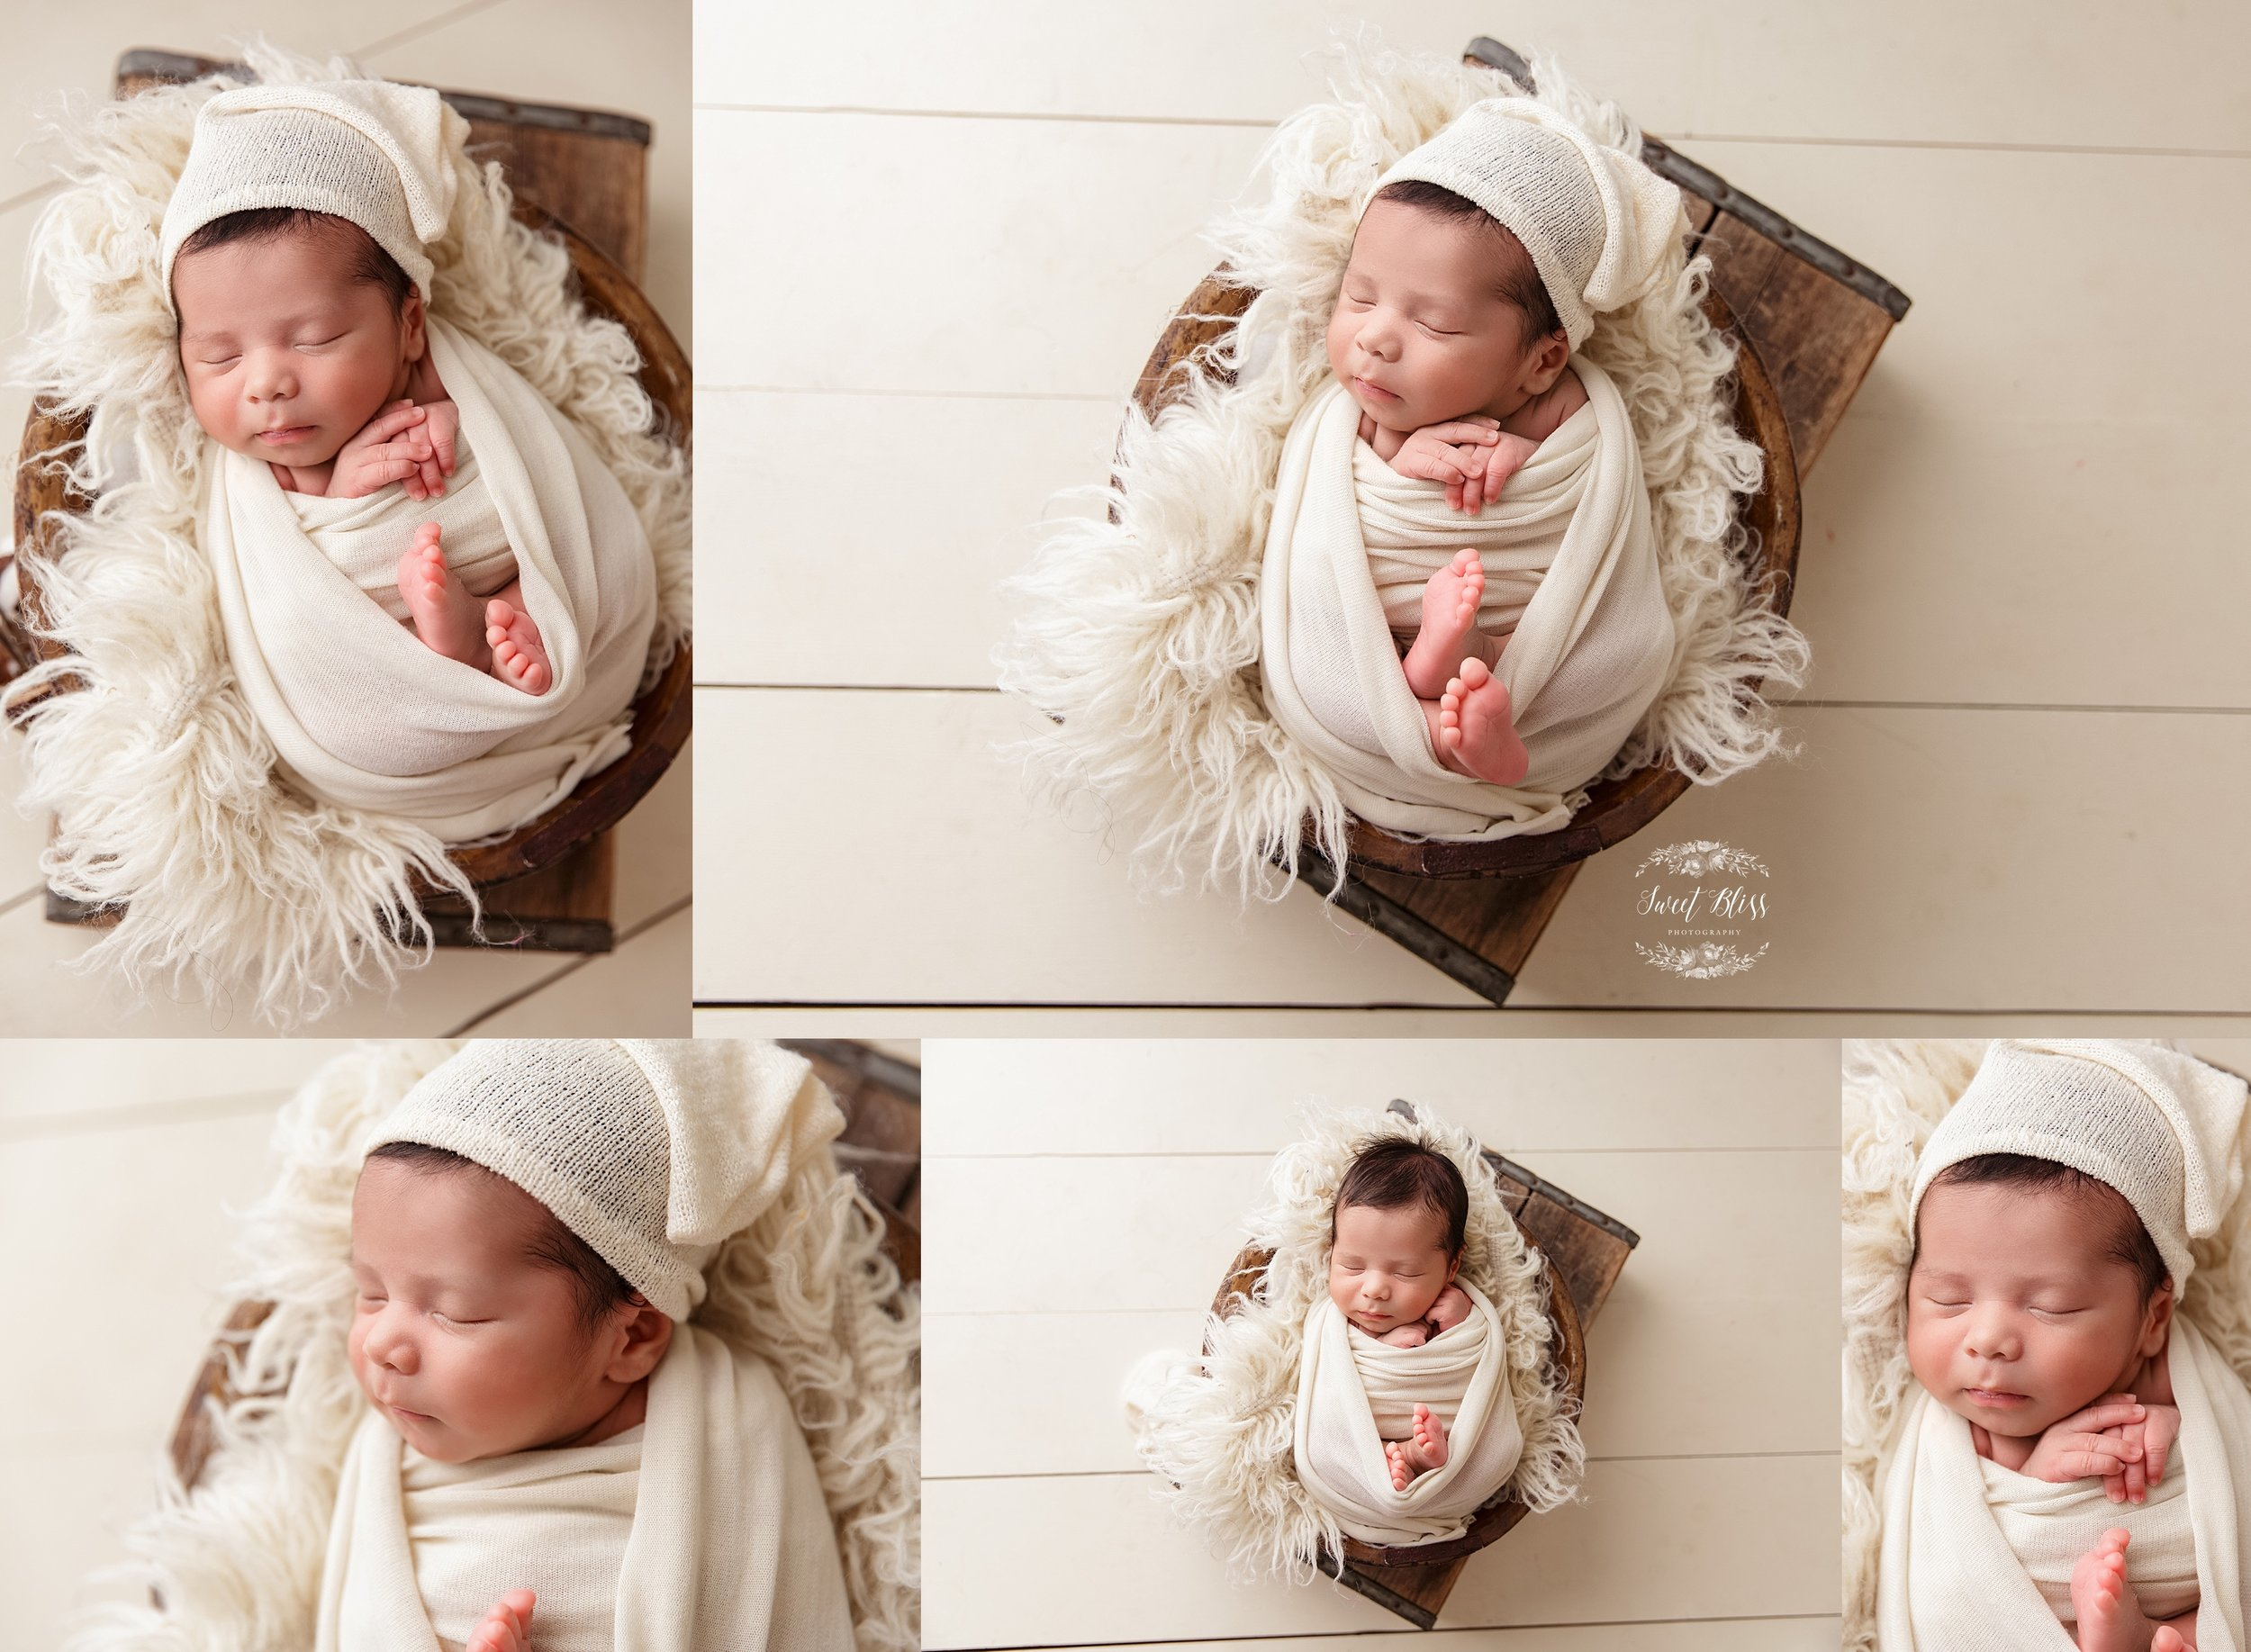 Baltimorenewbornphotographer_sweetblissphoto_bucket1.jpg